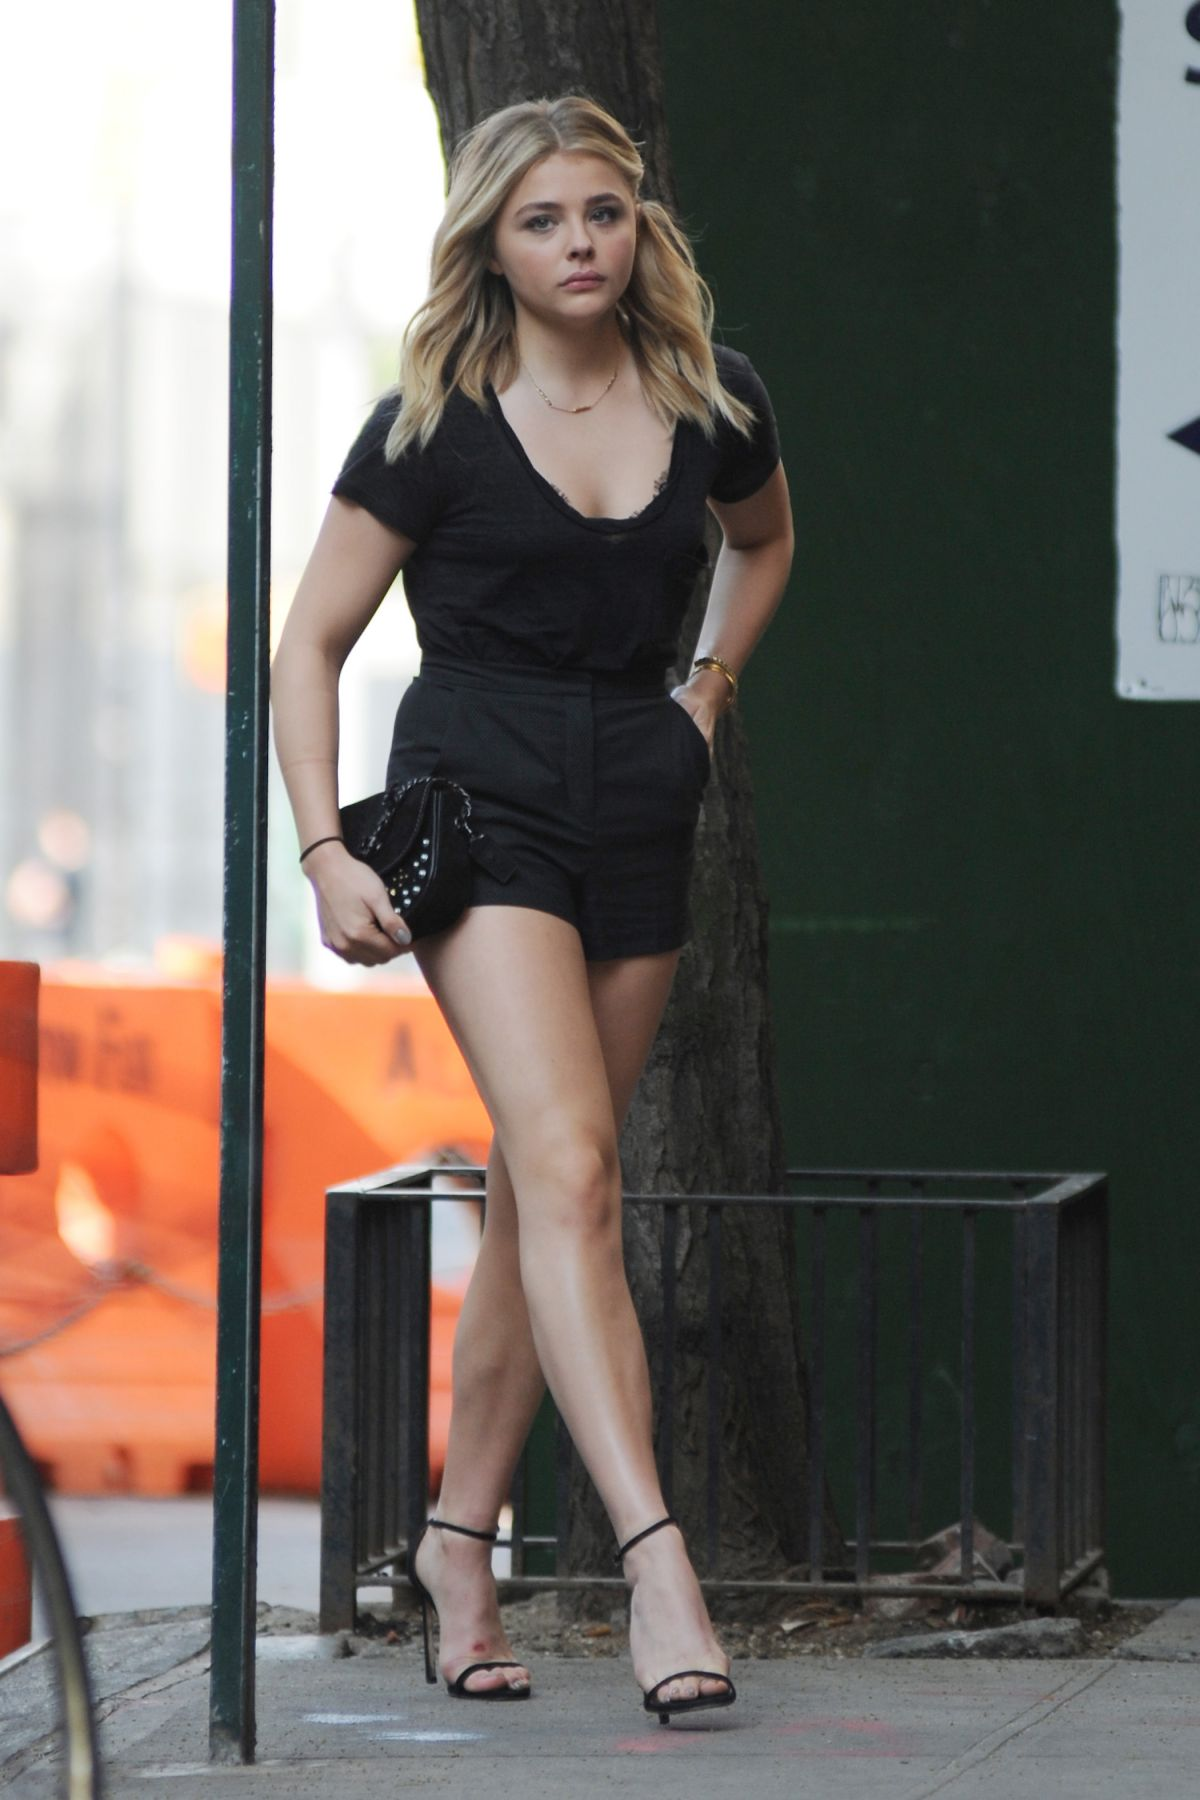 CHLOE MORETZ in Shorts Out and About in New York 05/23 ...